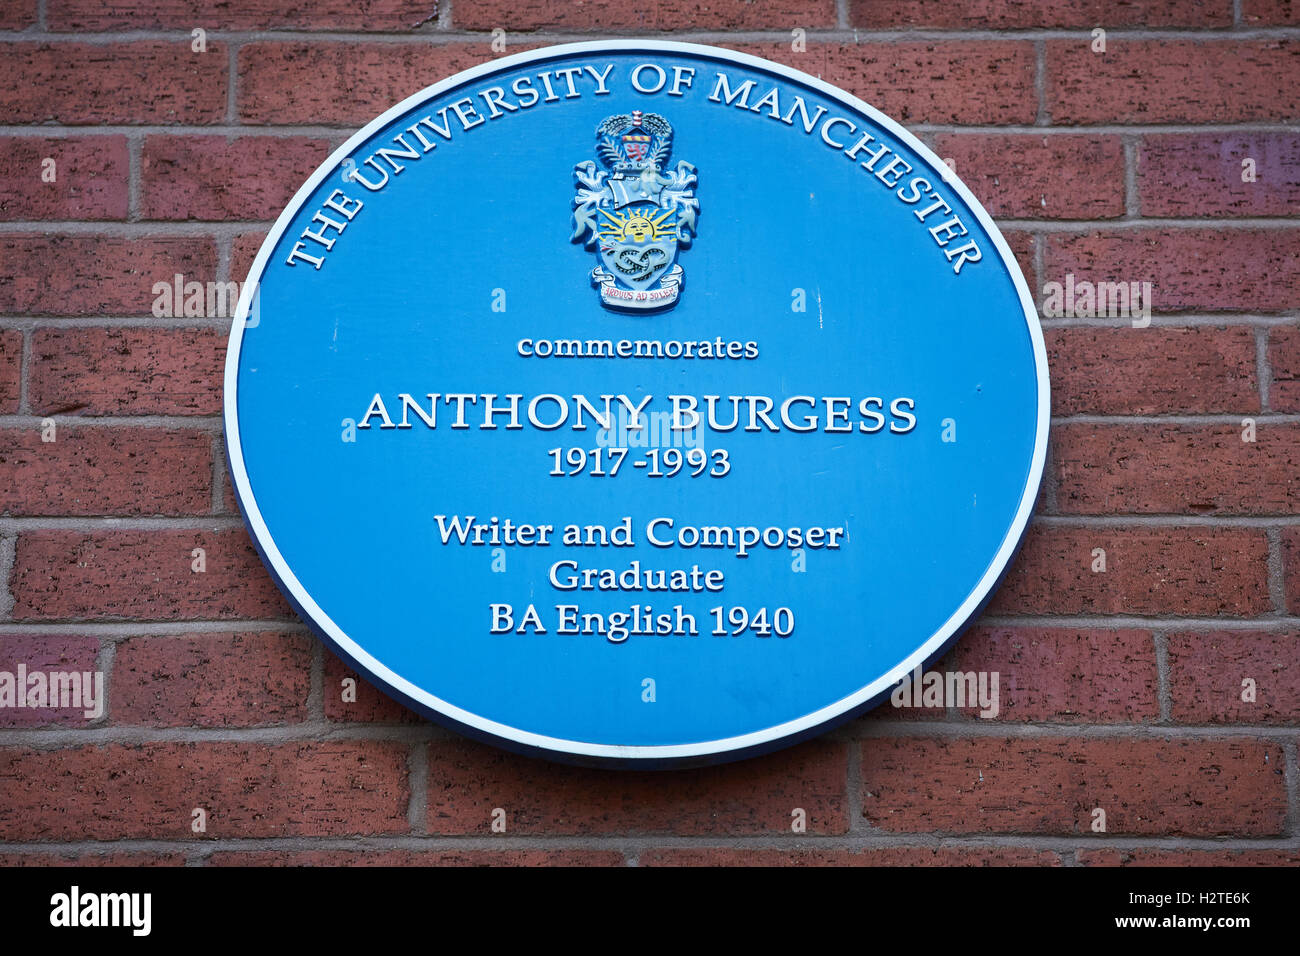 Anthony Burgess plaque blue   Manchester University writer composer mancunian commemorates commemoration graduate - Stock Image